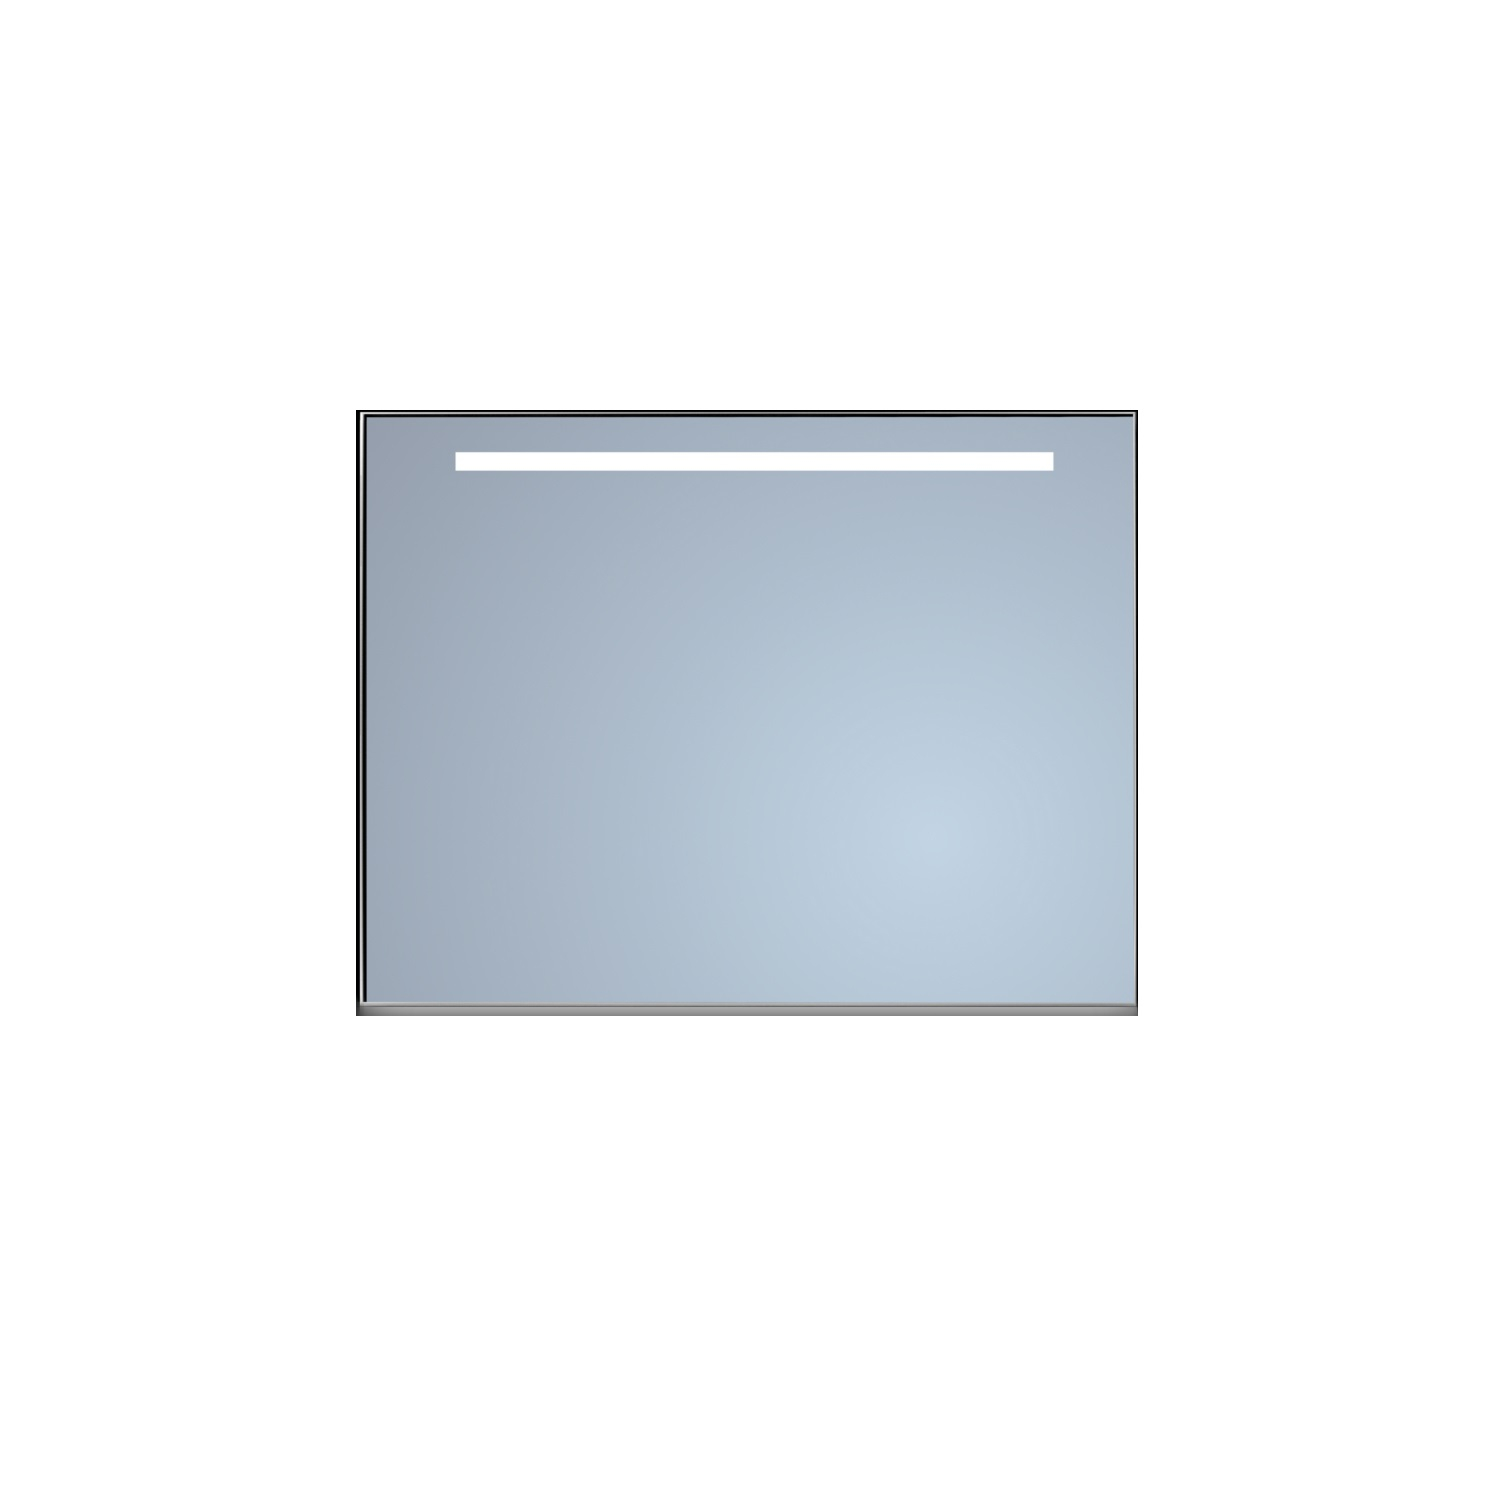 Badkamerspiegel Sanicare Q-Mirrors Ambiance en 'Cold White' LED-verlichting 70x90x3,5 Alu Omlijsting